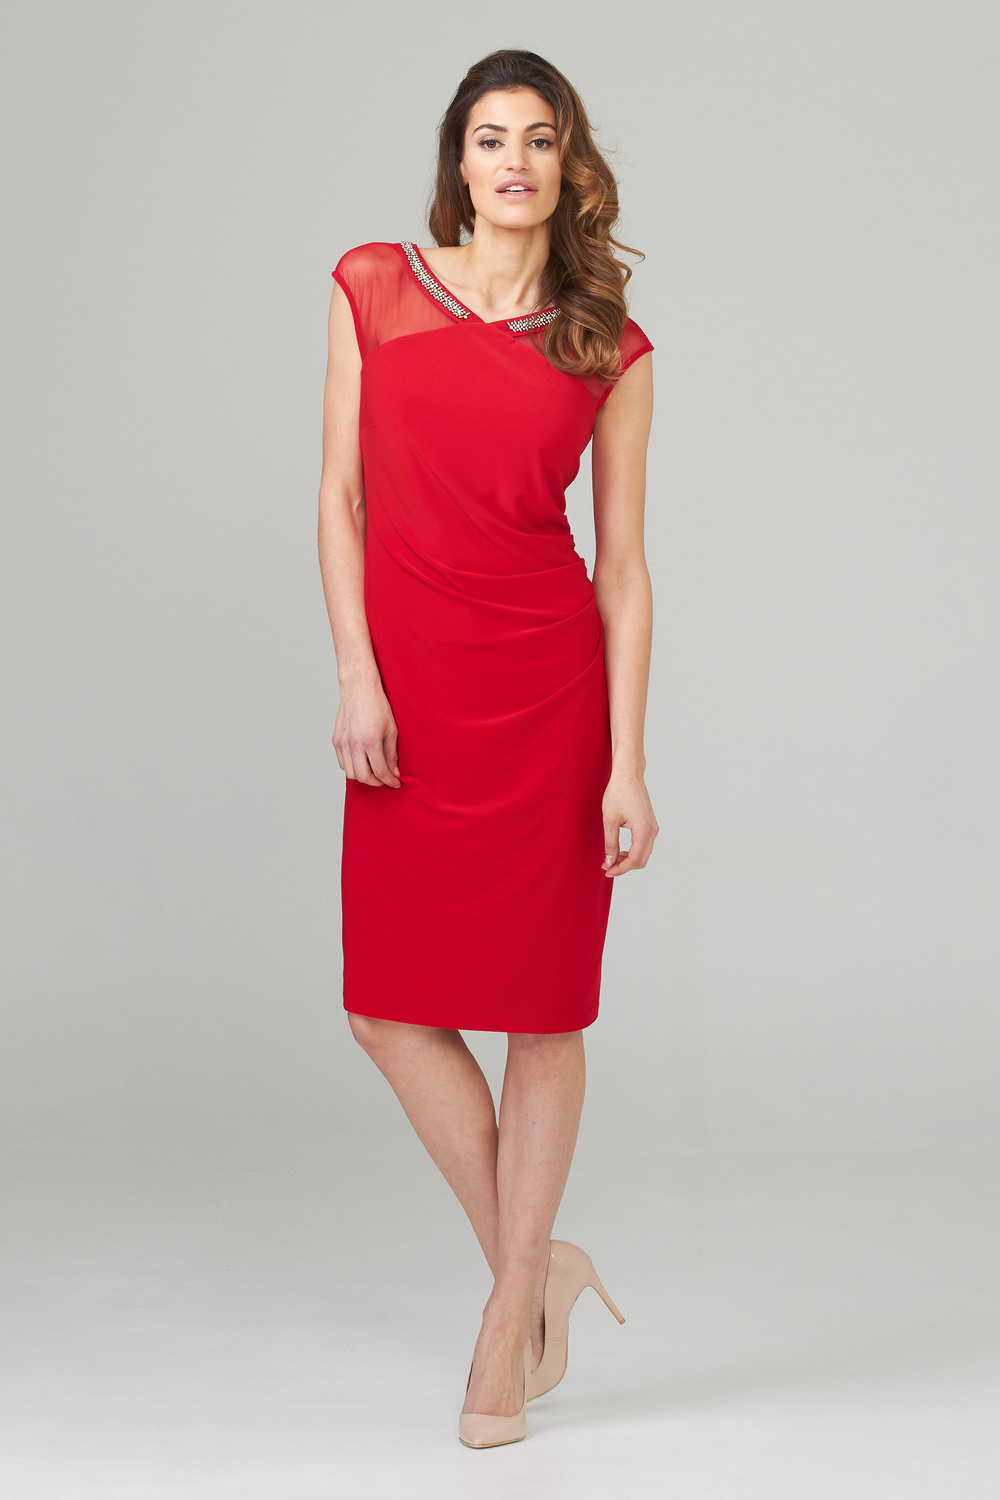 Joseph Ribkoff Robes Rouge A Levres 173 Style 201004